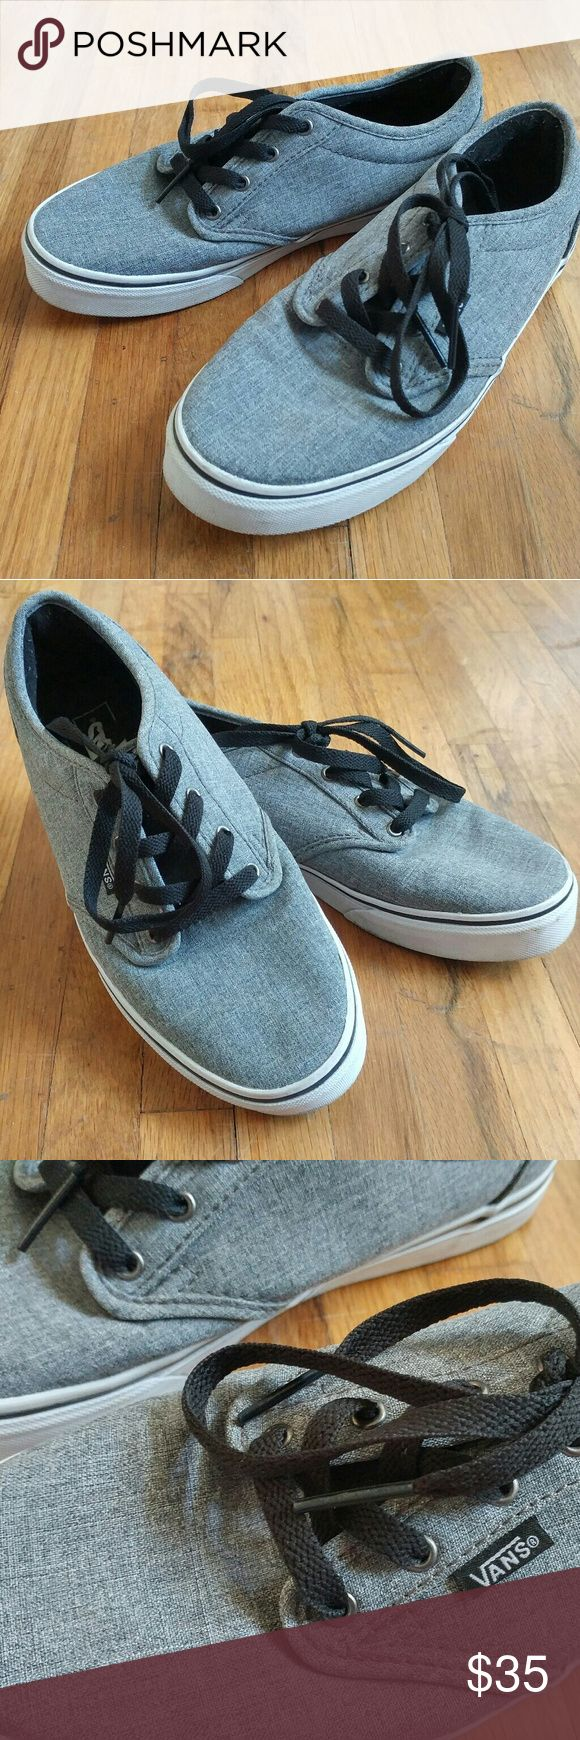 Final Sale!!! Vans Sneakers Vans shoes worn 3-4 times. Classically cute and a comfortable everyday shoe. Although I bought it as a Youth size 5.5 I wear a women's 6.5 to 7 and these fit me although I think this is best suited for ladies who are about a 6.5 size shoe. Vans Shoes Sneakers